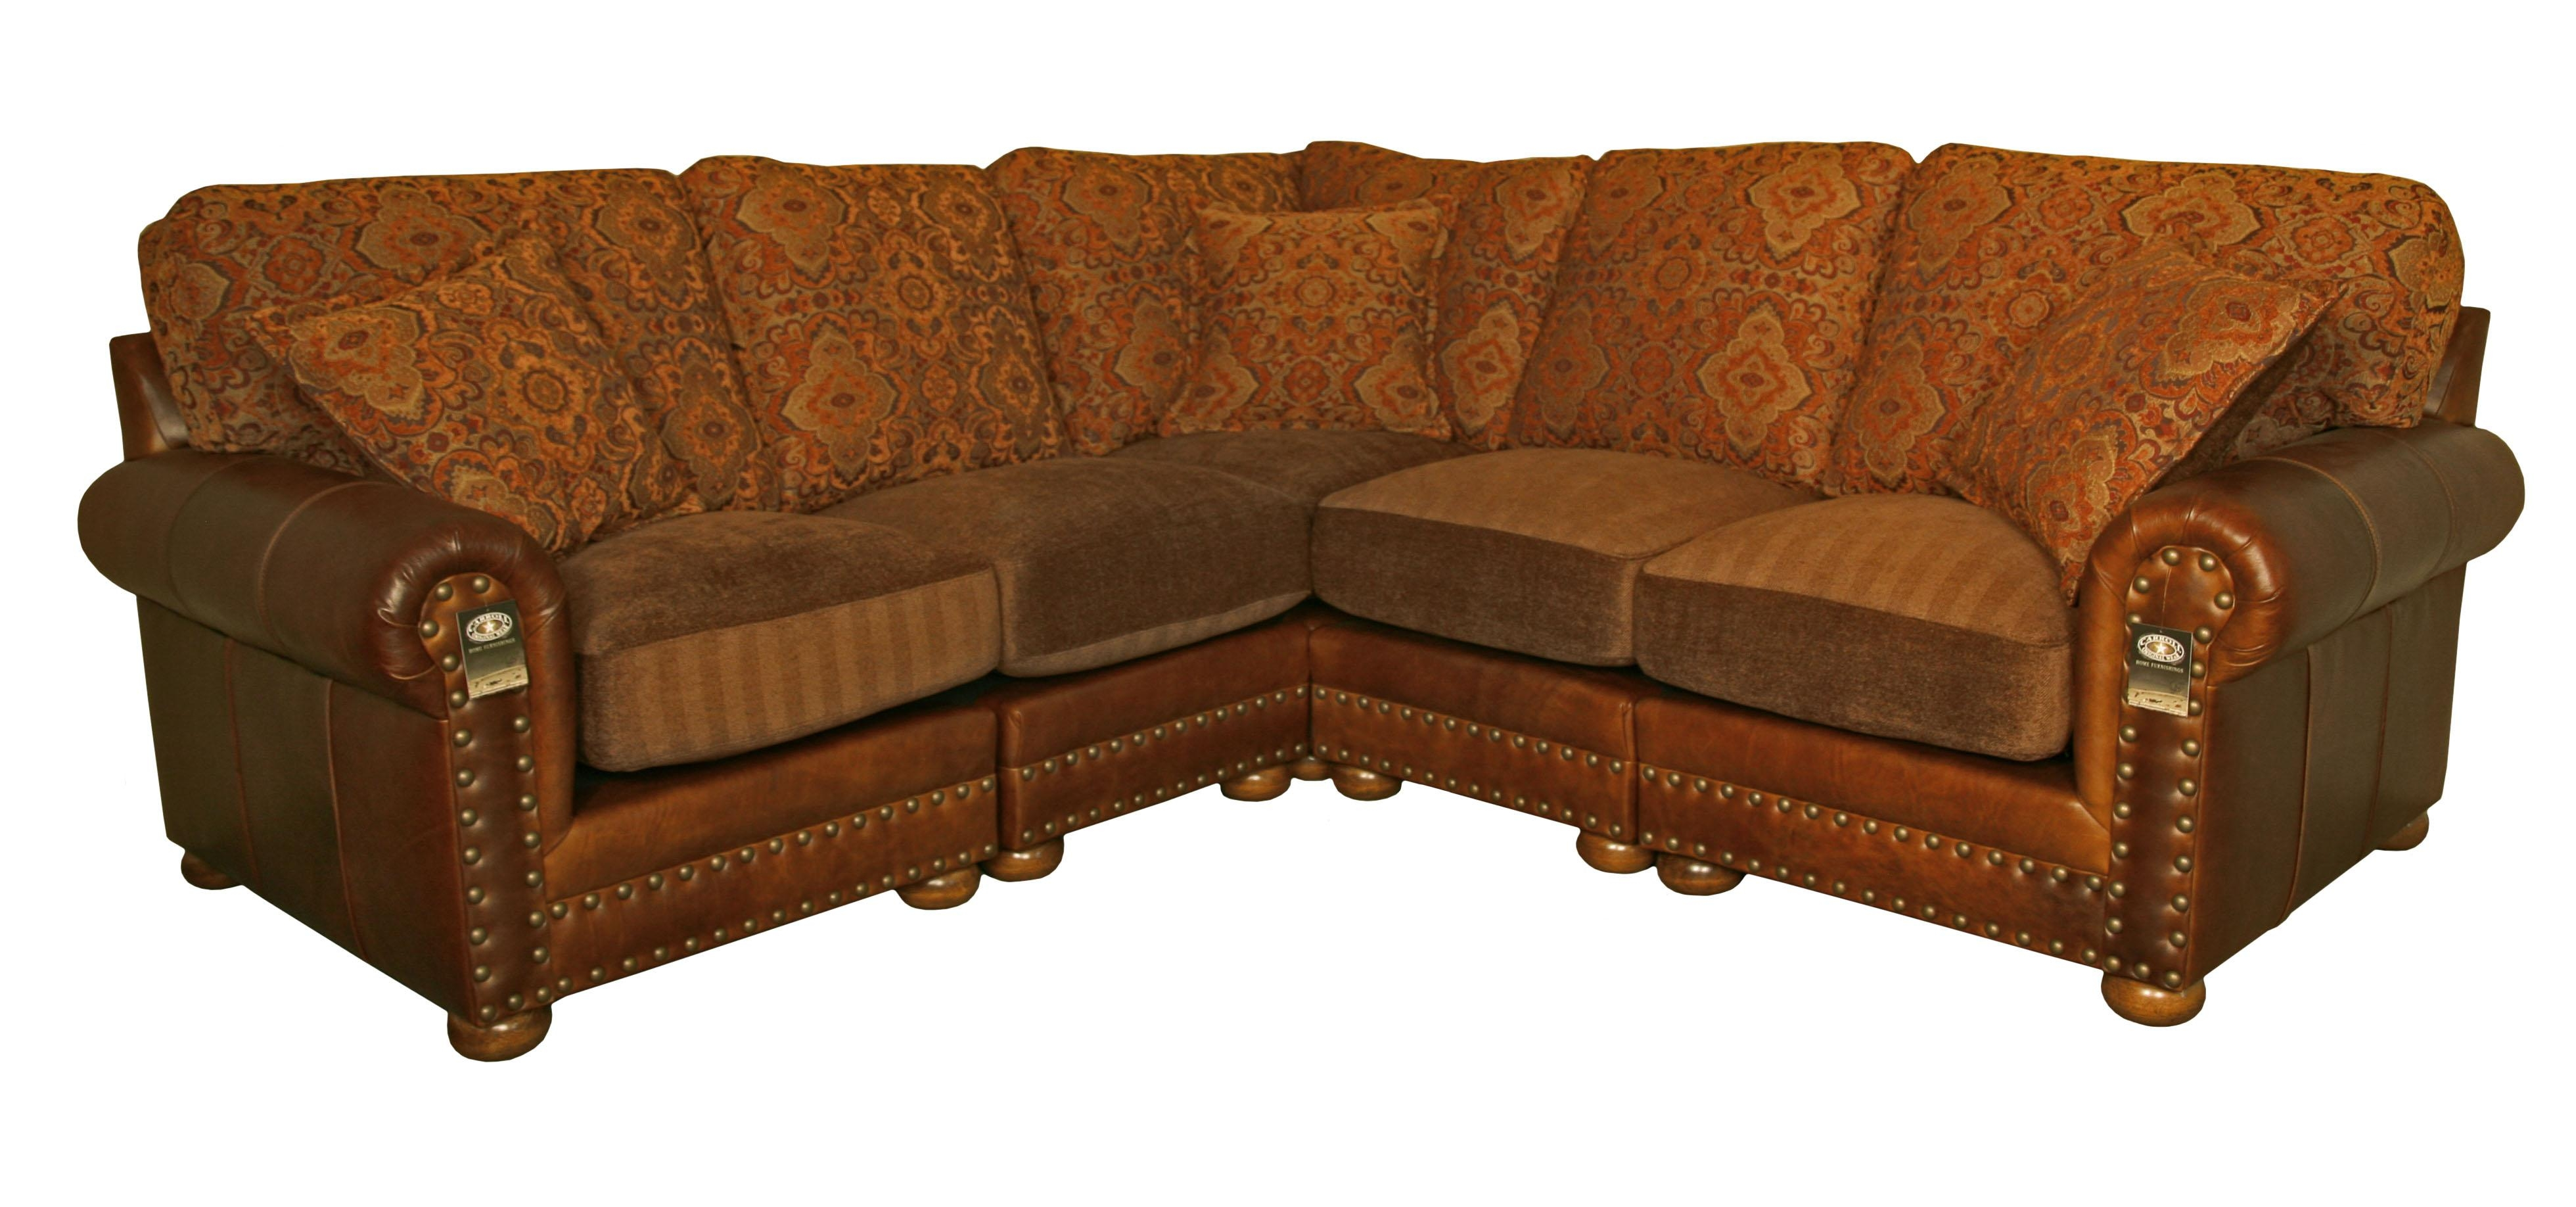 Conversation Sofa Sectional Rs Gold Sofa Inside Conversation Sofa Sectional (#9 of 12)